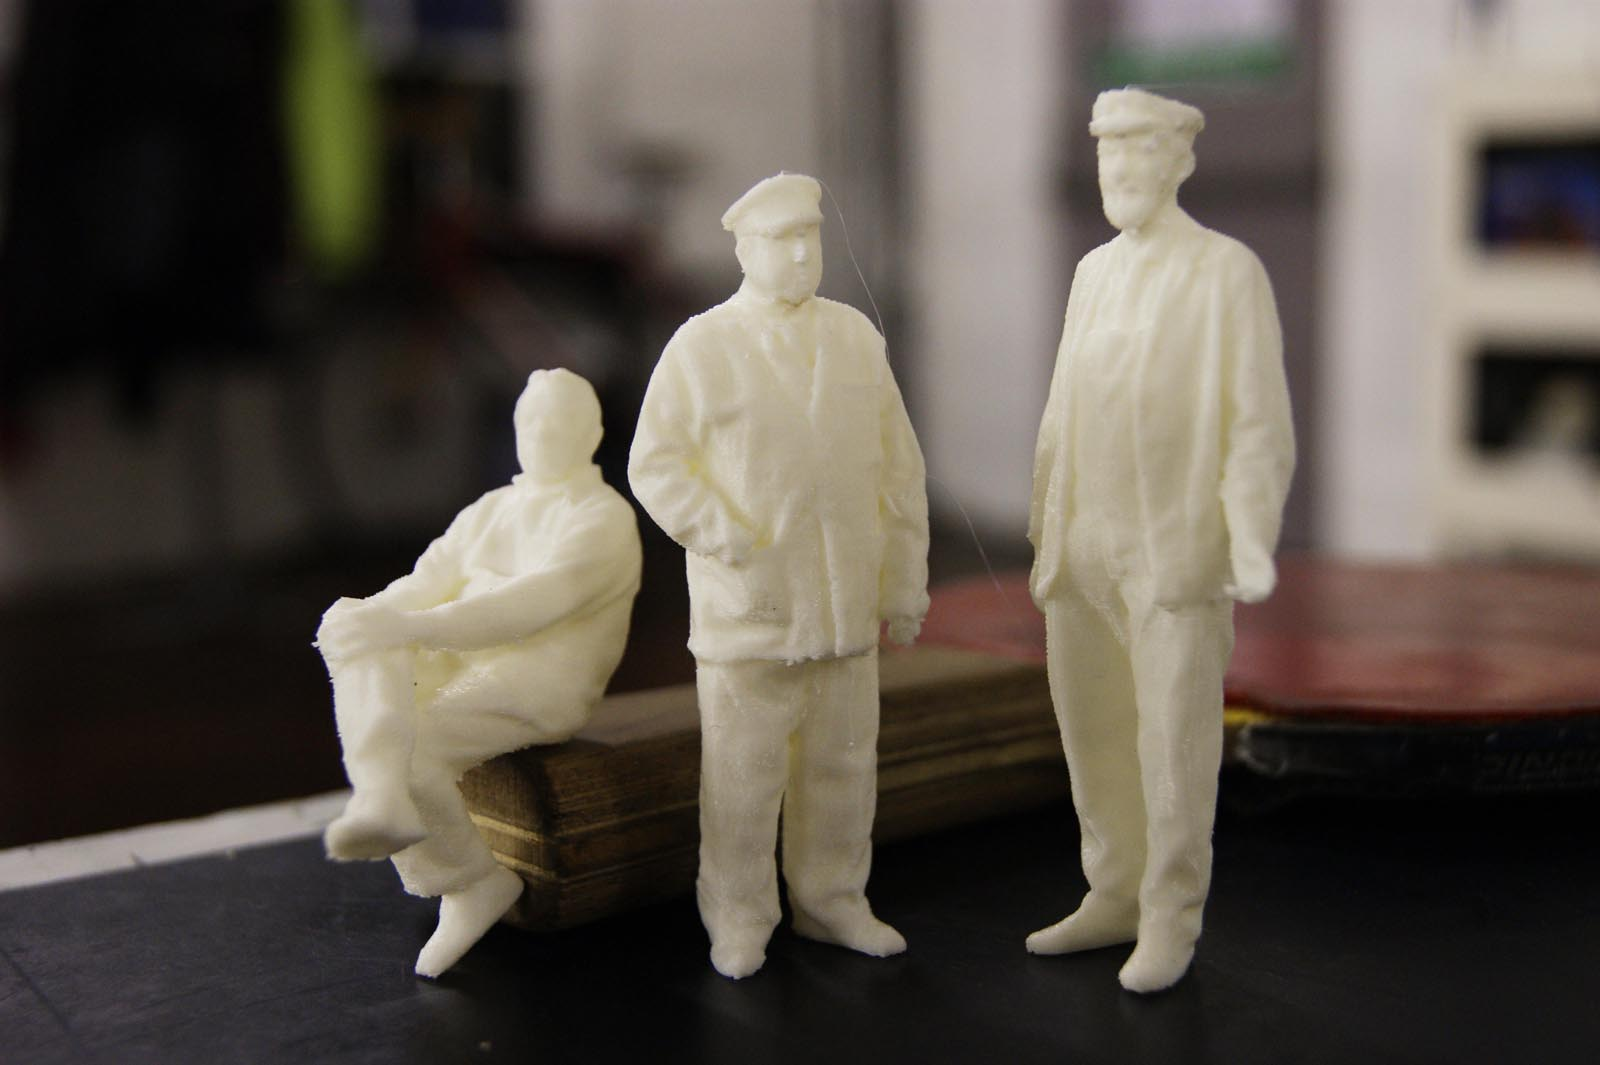 Revered image for 3d printable figures